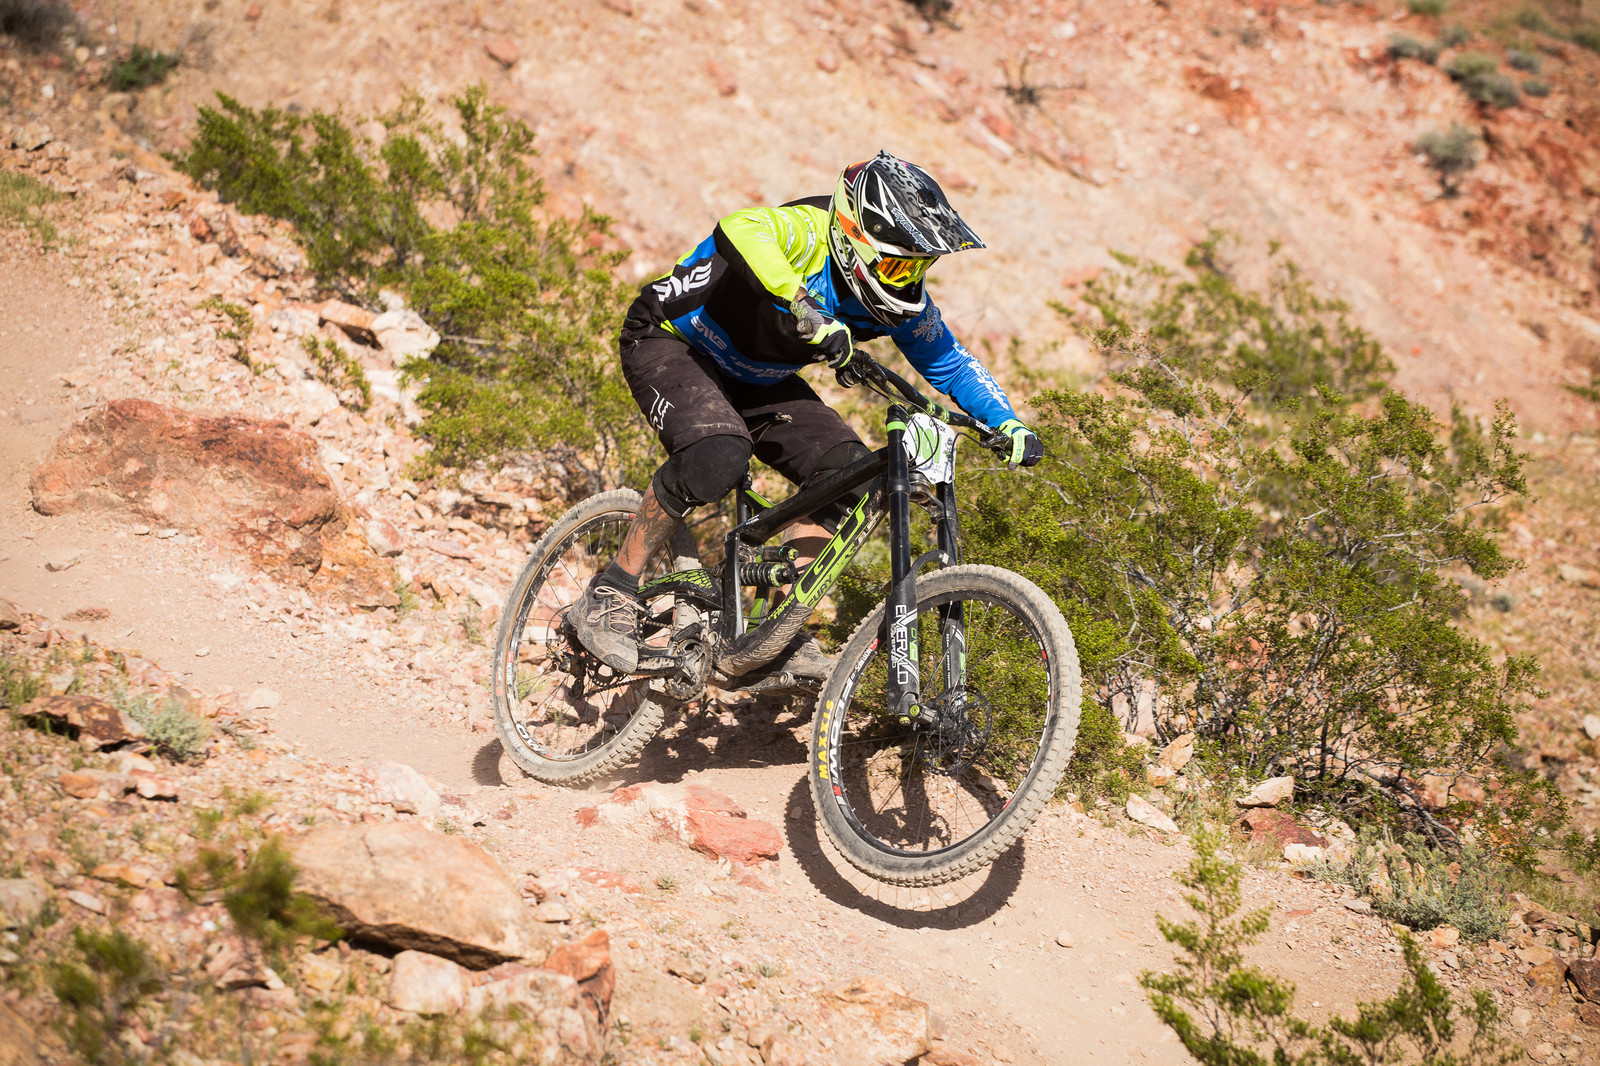 2017 Reaper Madness DH at Bootleg Canyon-34 - 2017 Reaper Madness DH Photos - Mountain Biking Pictures - Vital MTB